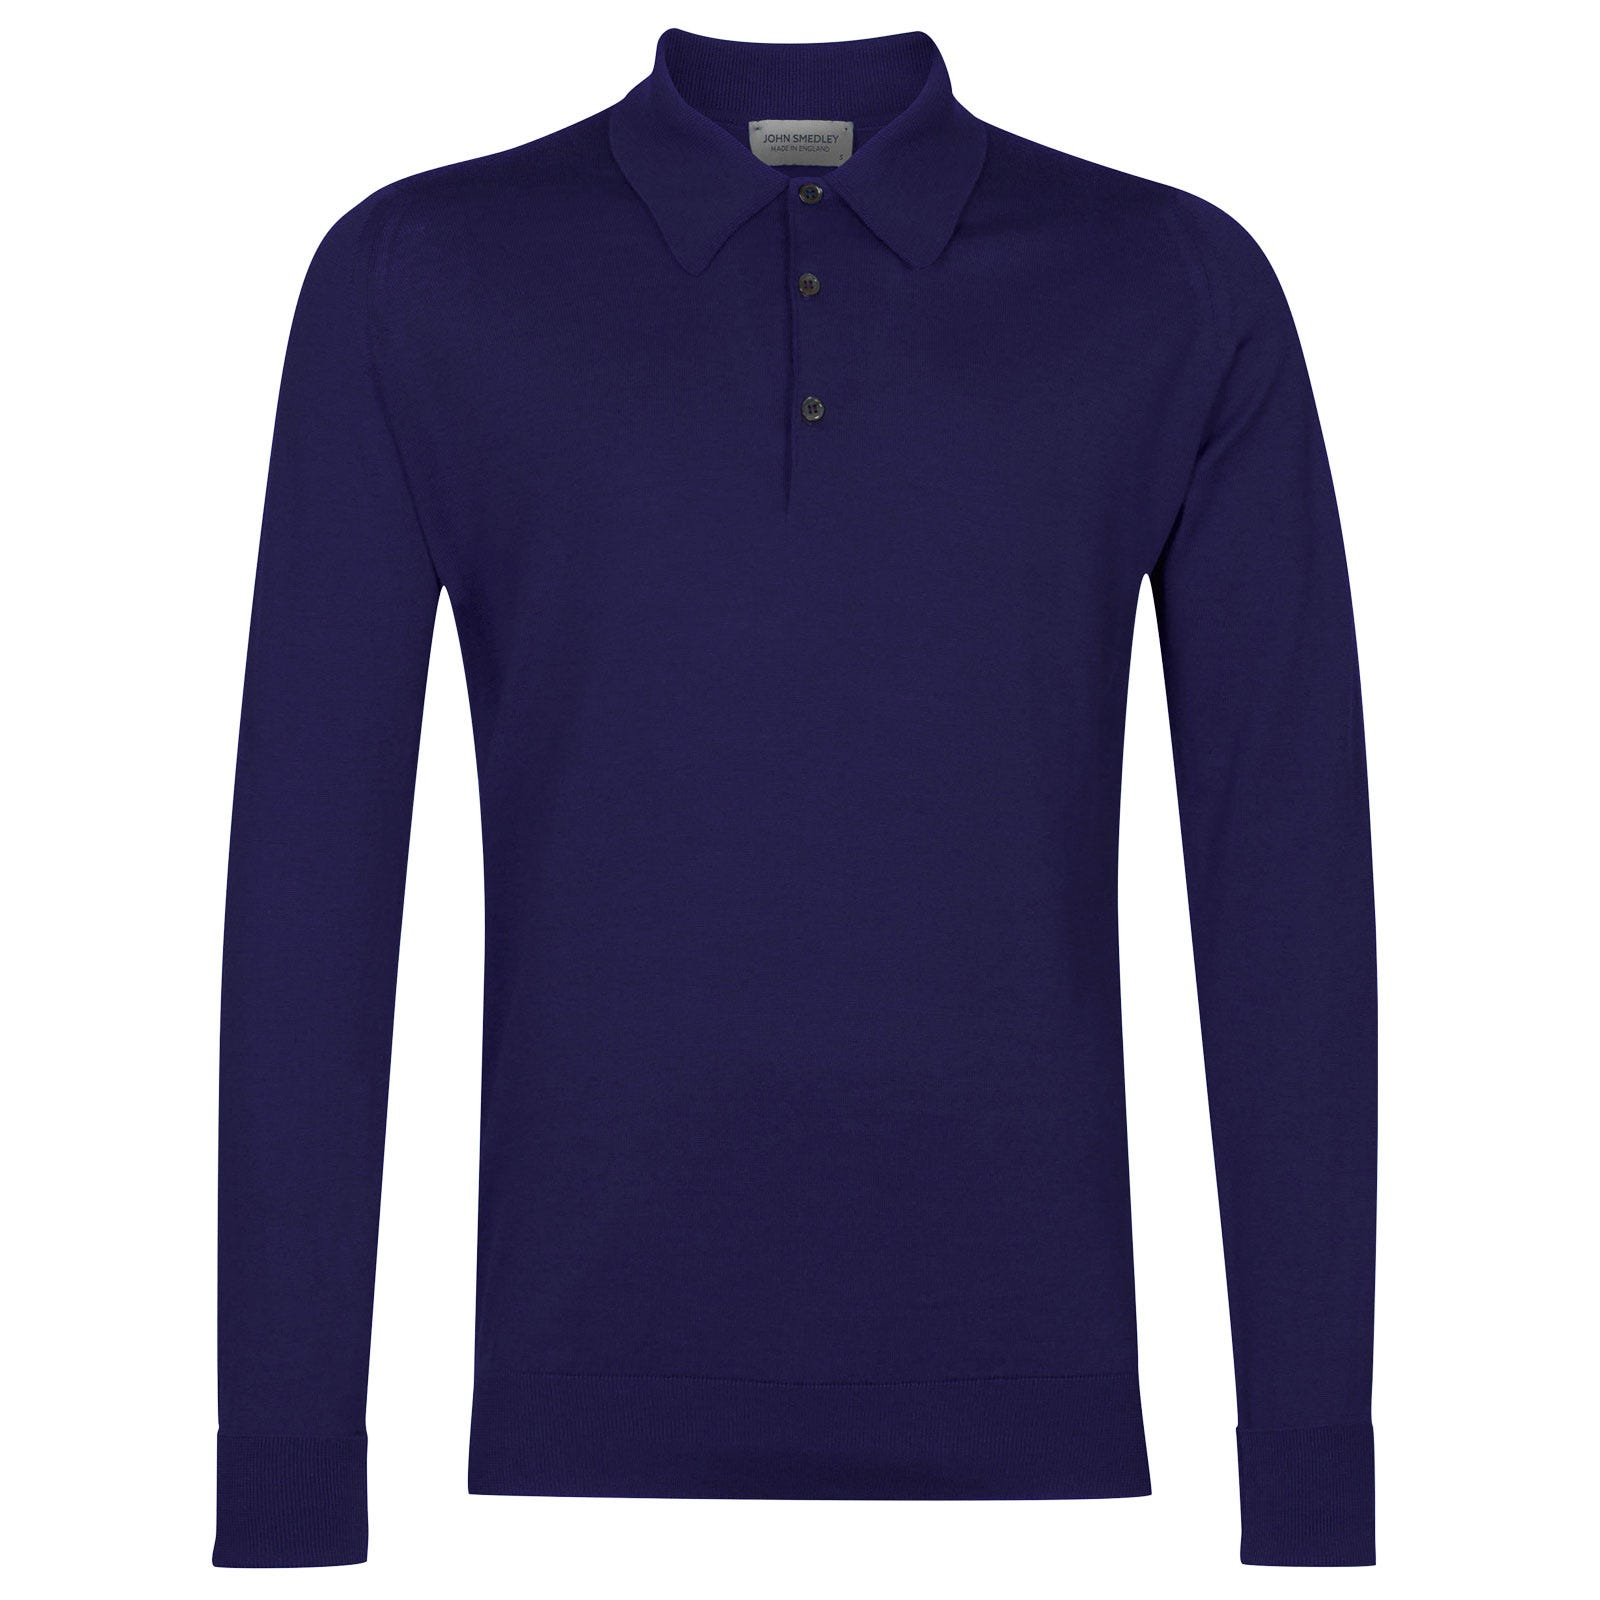 John Smedley Finchley Sea Island Cotton Shirt in Serge Blue-S